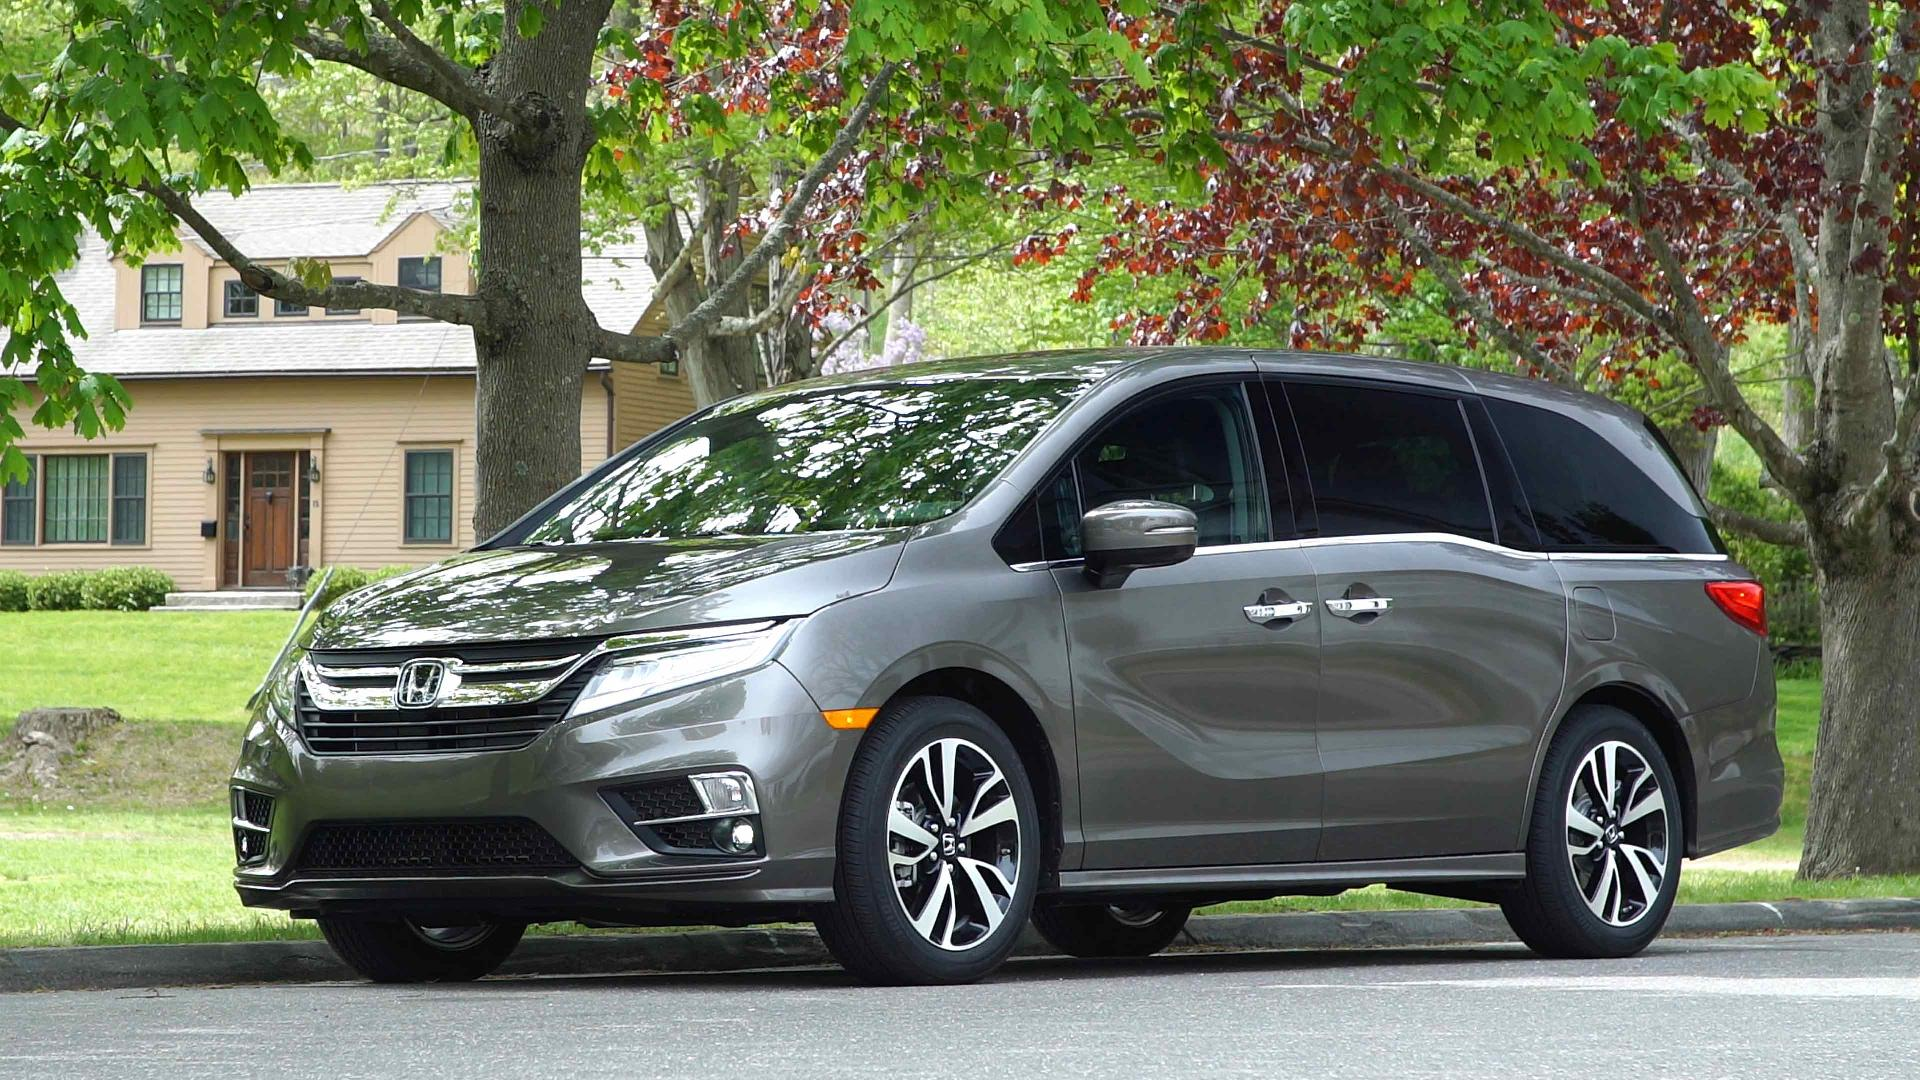 2018 honda odyssey is designed for epic road trips consumer reports. Black Bedroom Furniture Sets. Home Design Ideas